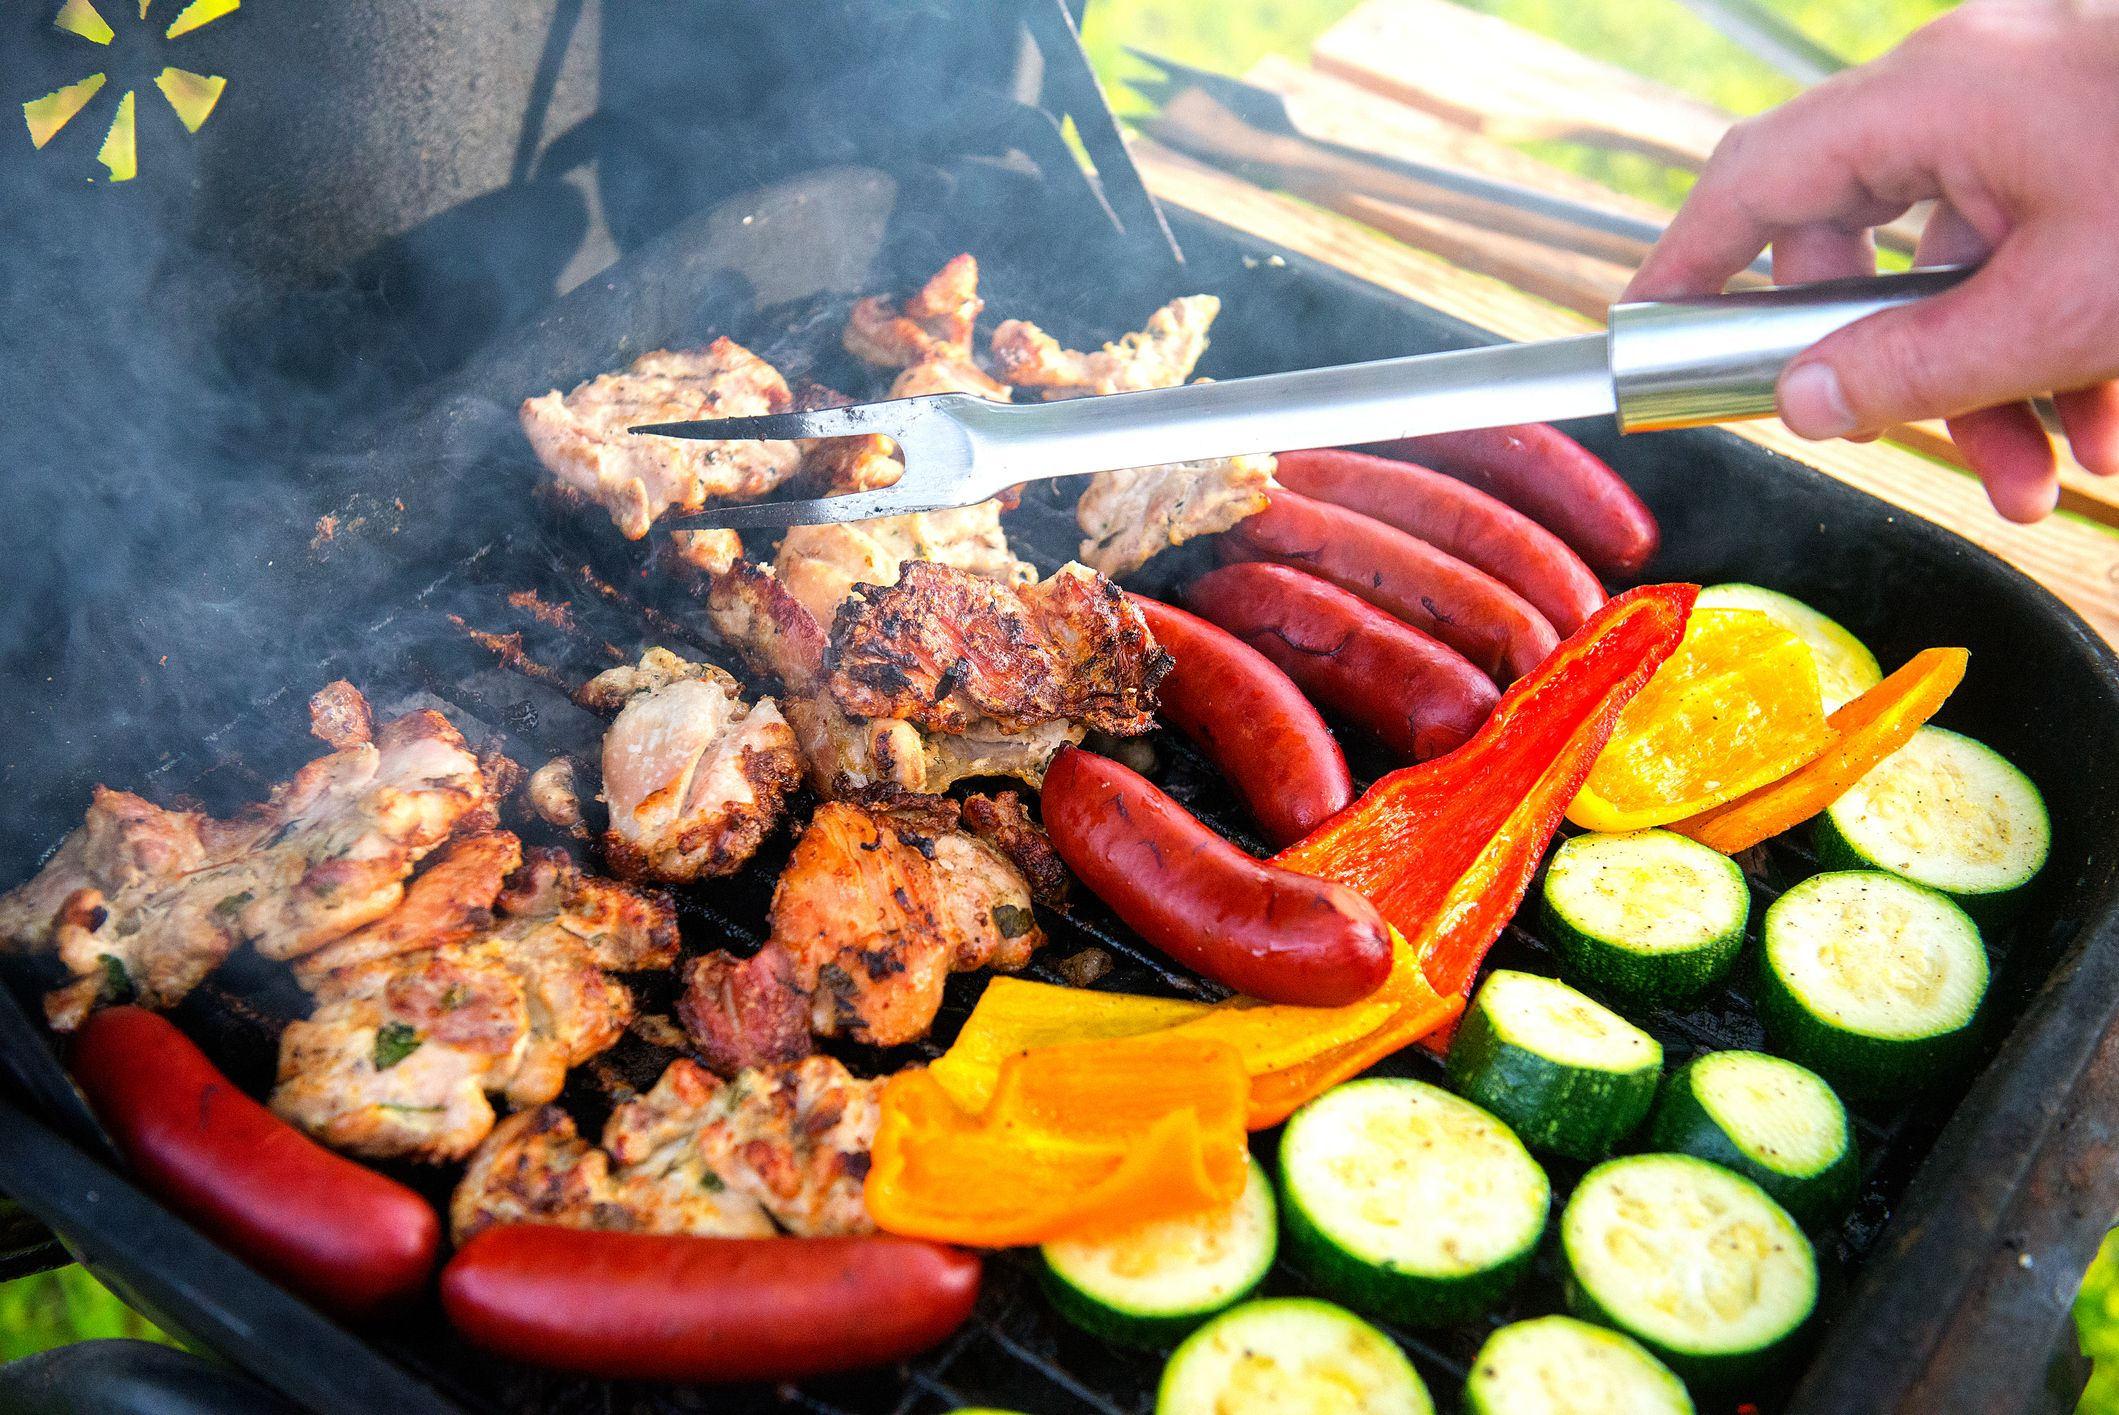 How To Grill Any Type Of Food Best Bbq Grilling Tips